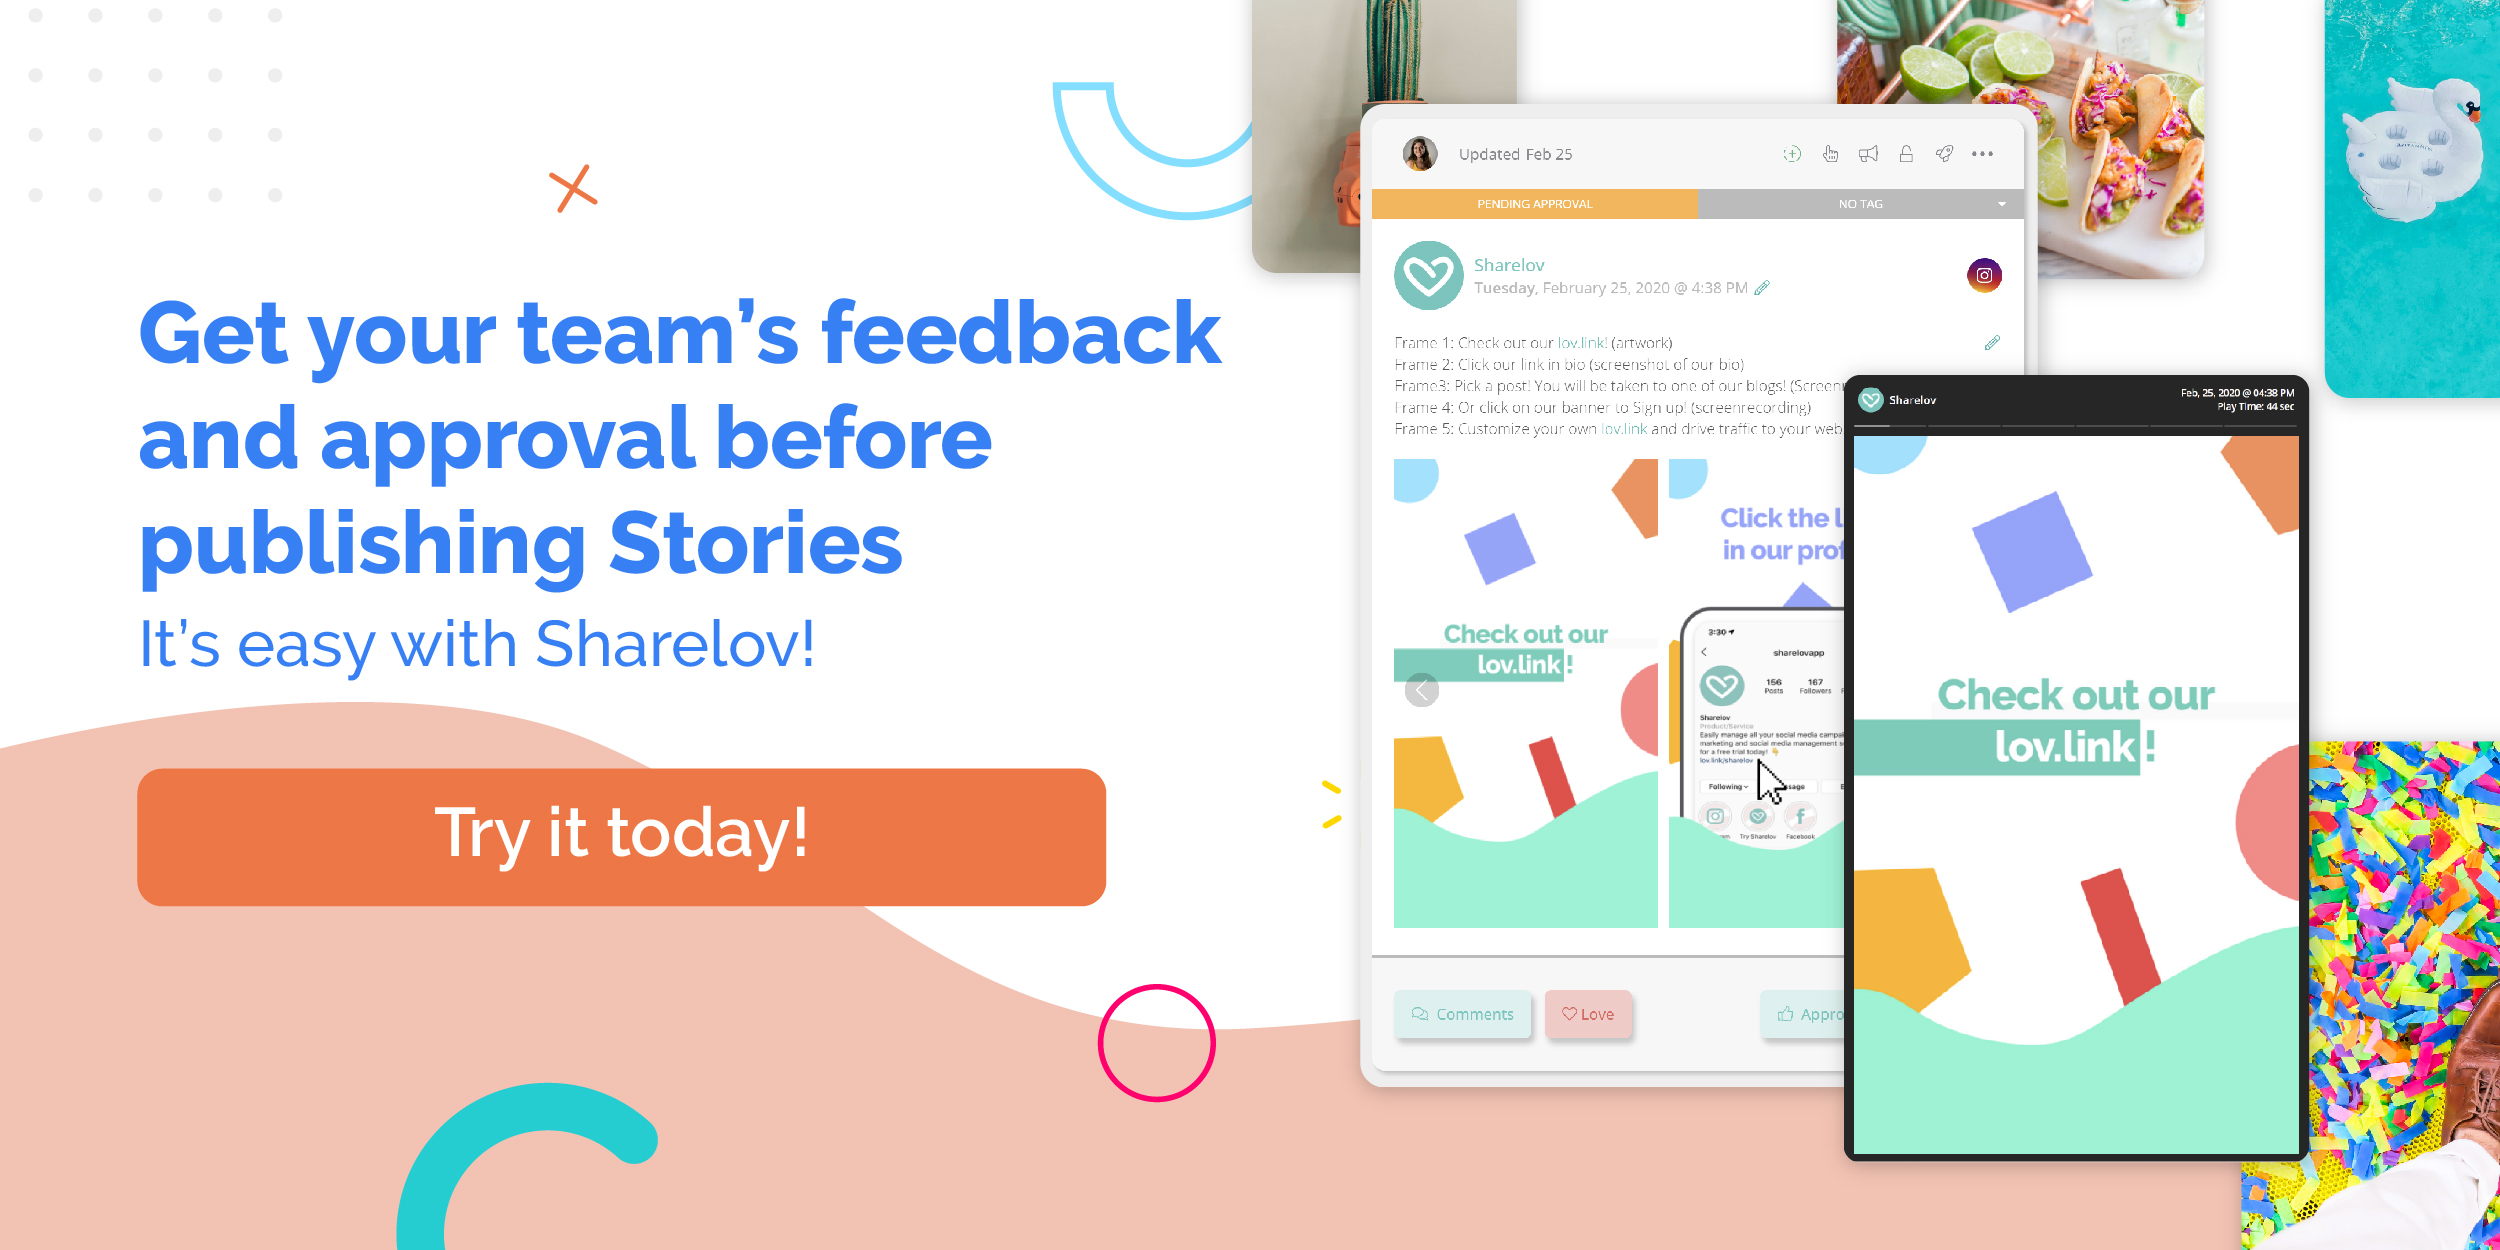 Get your team's feedback and approval before publishing Stories It's easy with Sharelov!